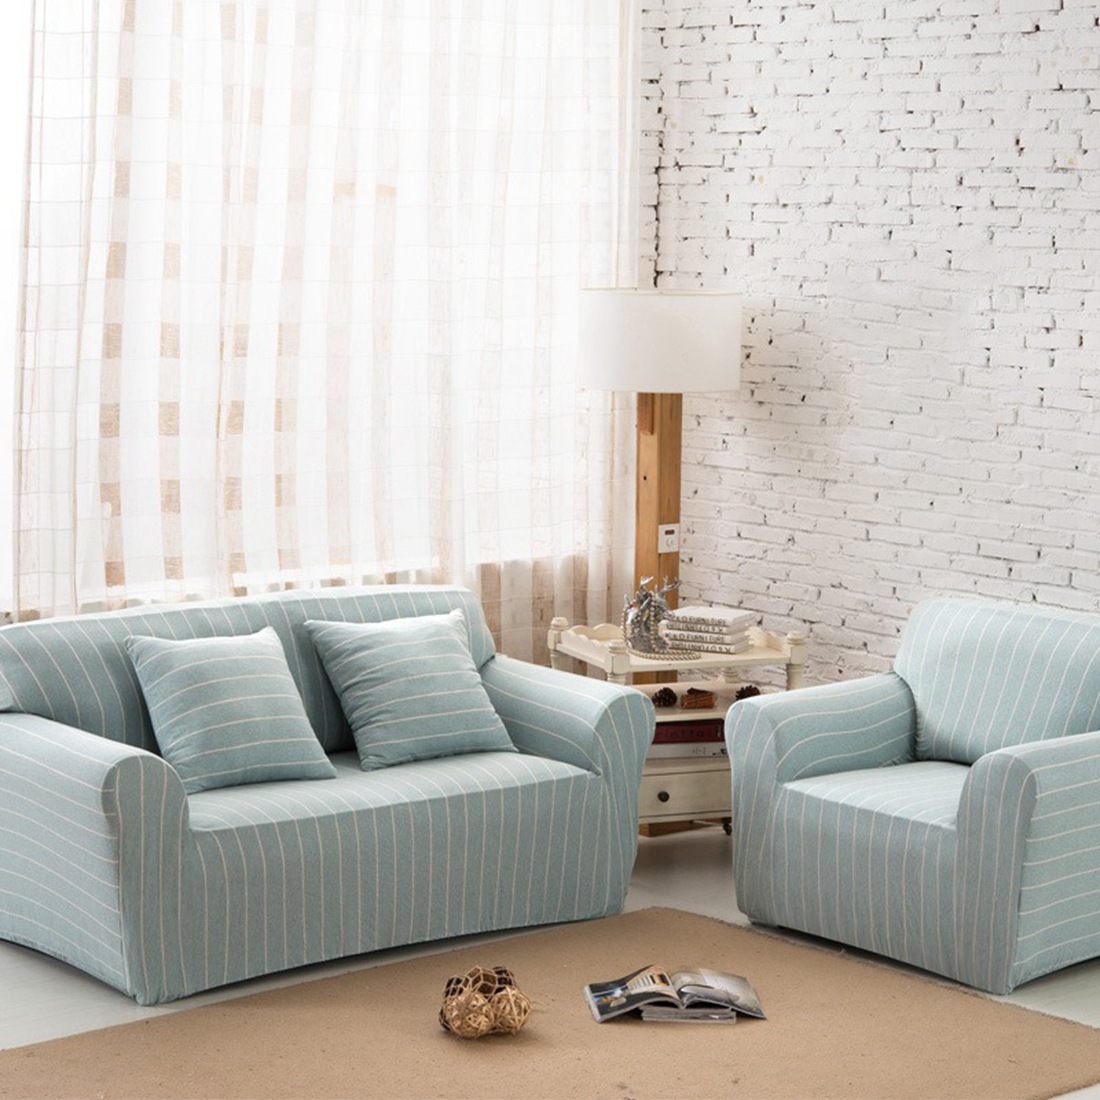 High Quality Sofa Slipcovers Reversadermcreamcom